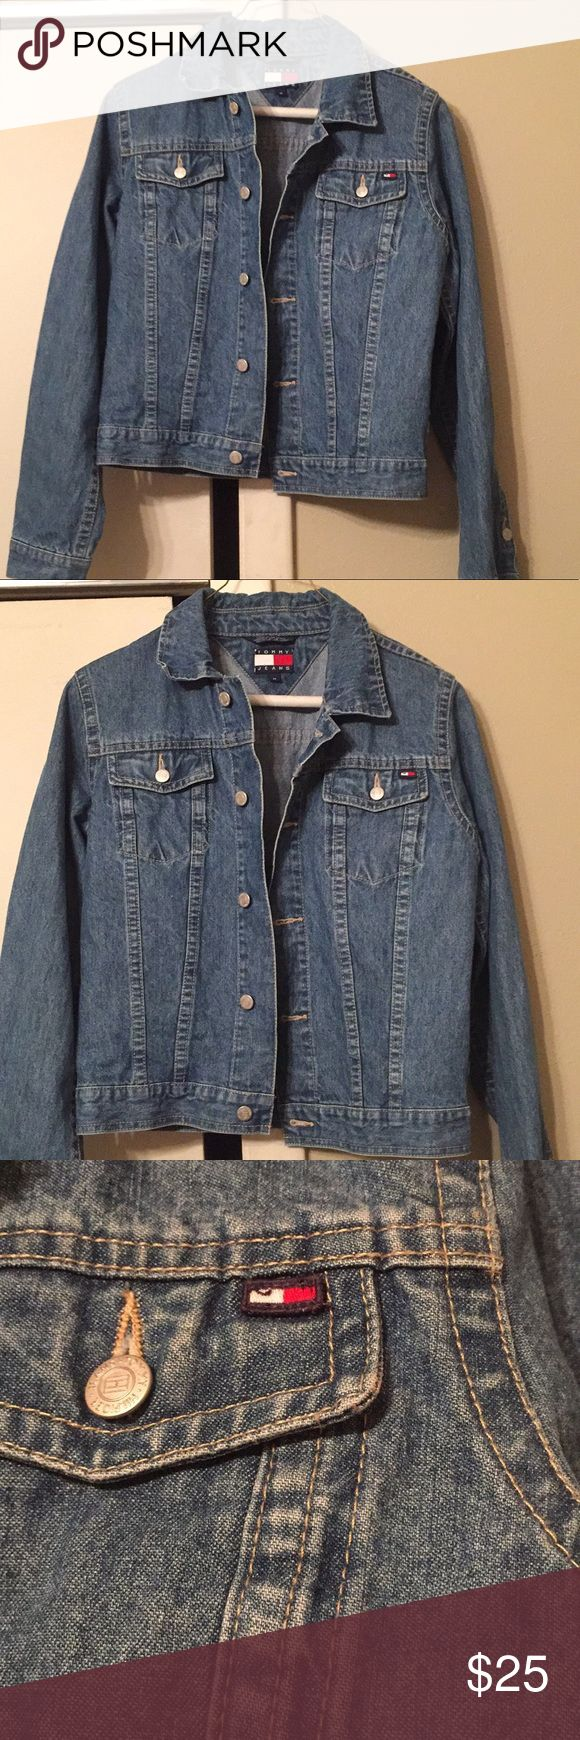 Vtg Tommy Hilfiger Jean jacket retro denim coat price firm no flaws vintage Tommy Hilfiger jean jacket . Excellent retro condition 90s Tommy Hilfiger jacket. Tommy flag logo on front and back. Button closure with Hilfiger logo. Perfect retro denim jacket for the season. size medium slightly stretchy possibly a juniors medium not sure. price firm ships next day  tags: 90s Levi's jean jacket retro oversized distressed jean jacket wrangler gap Tommy Hilfiger Jackets & Coats Jean Jackets